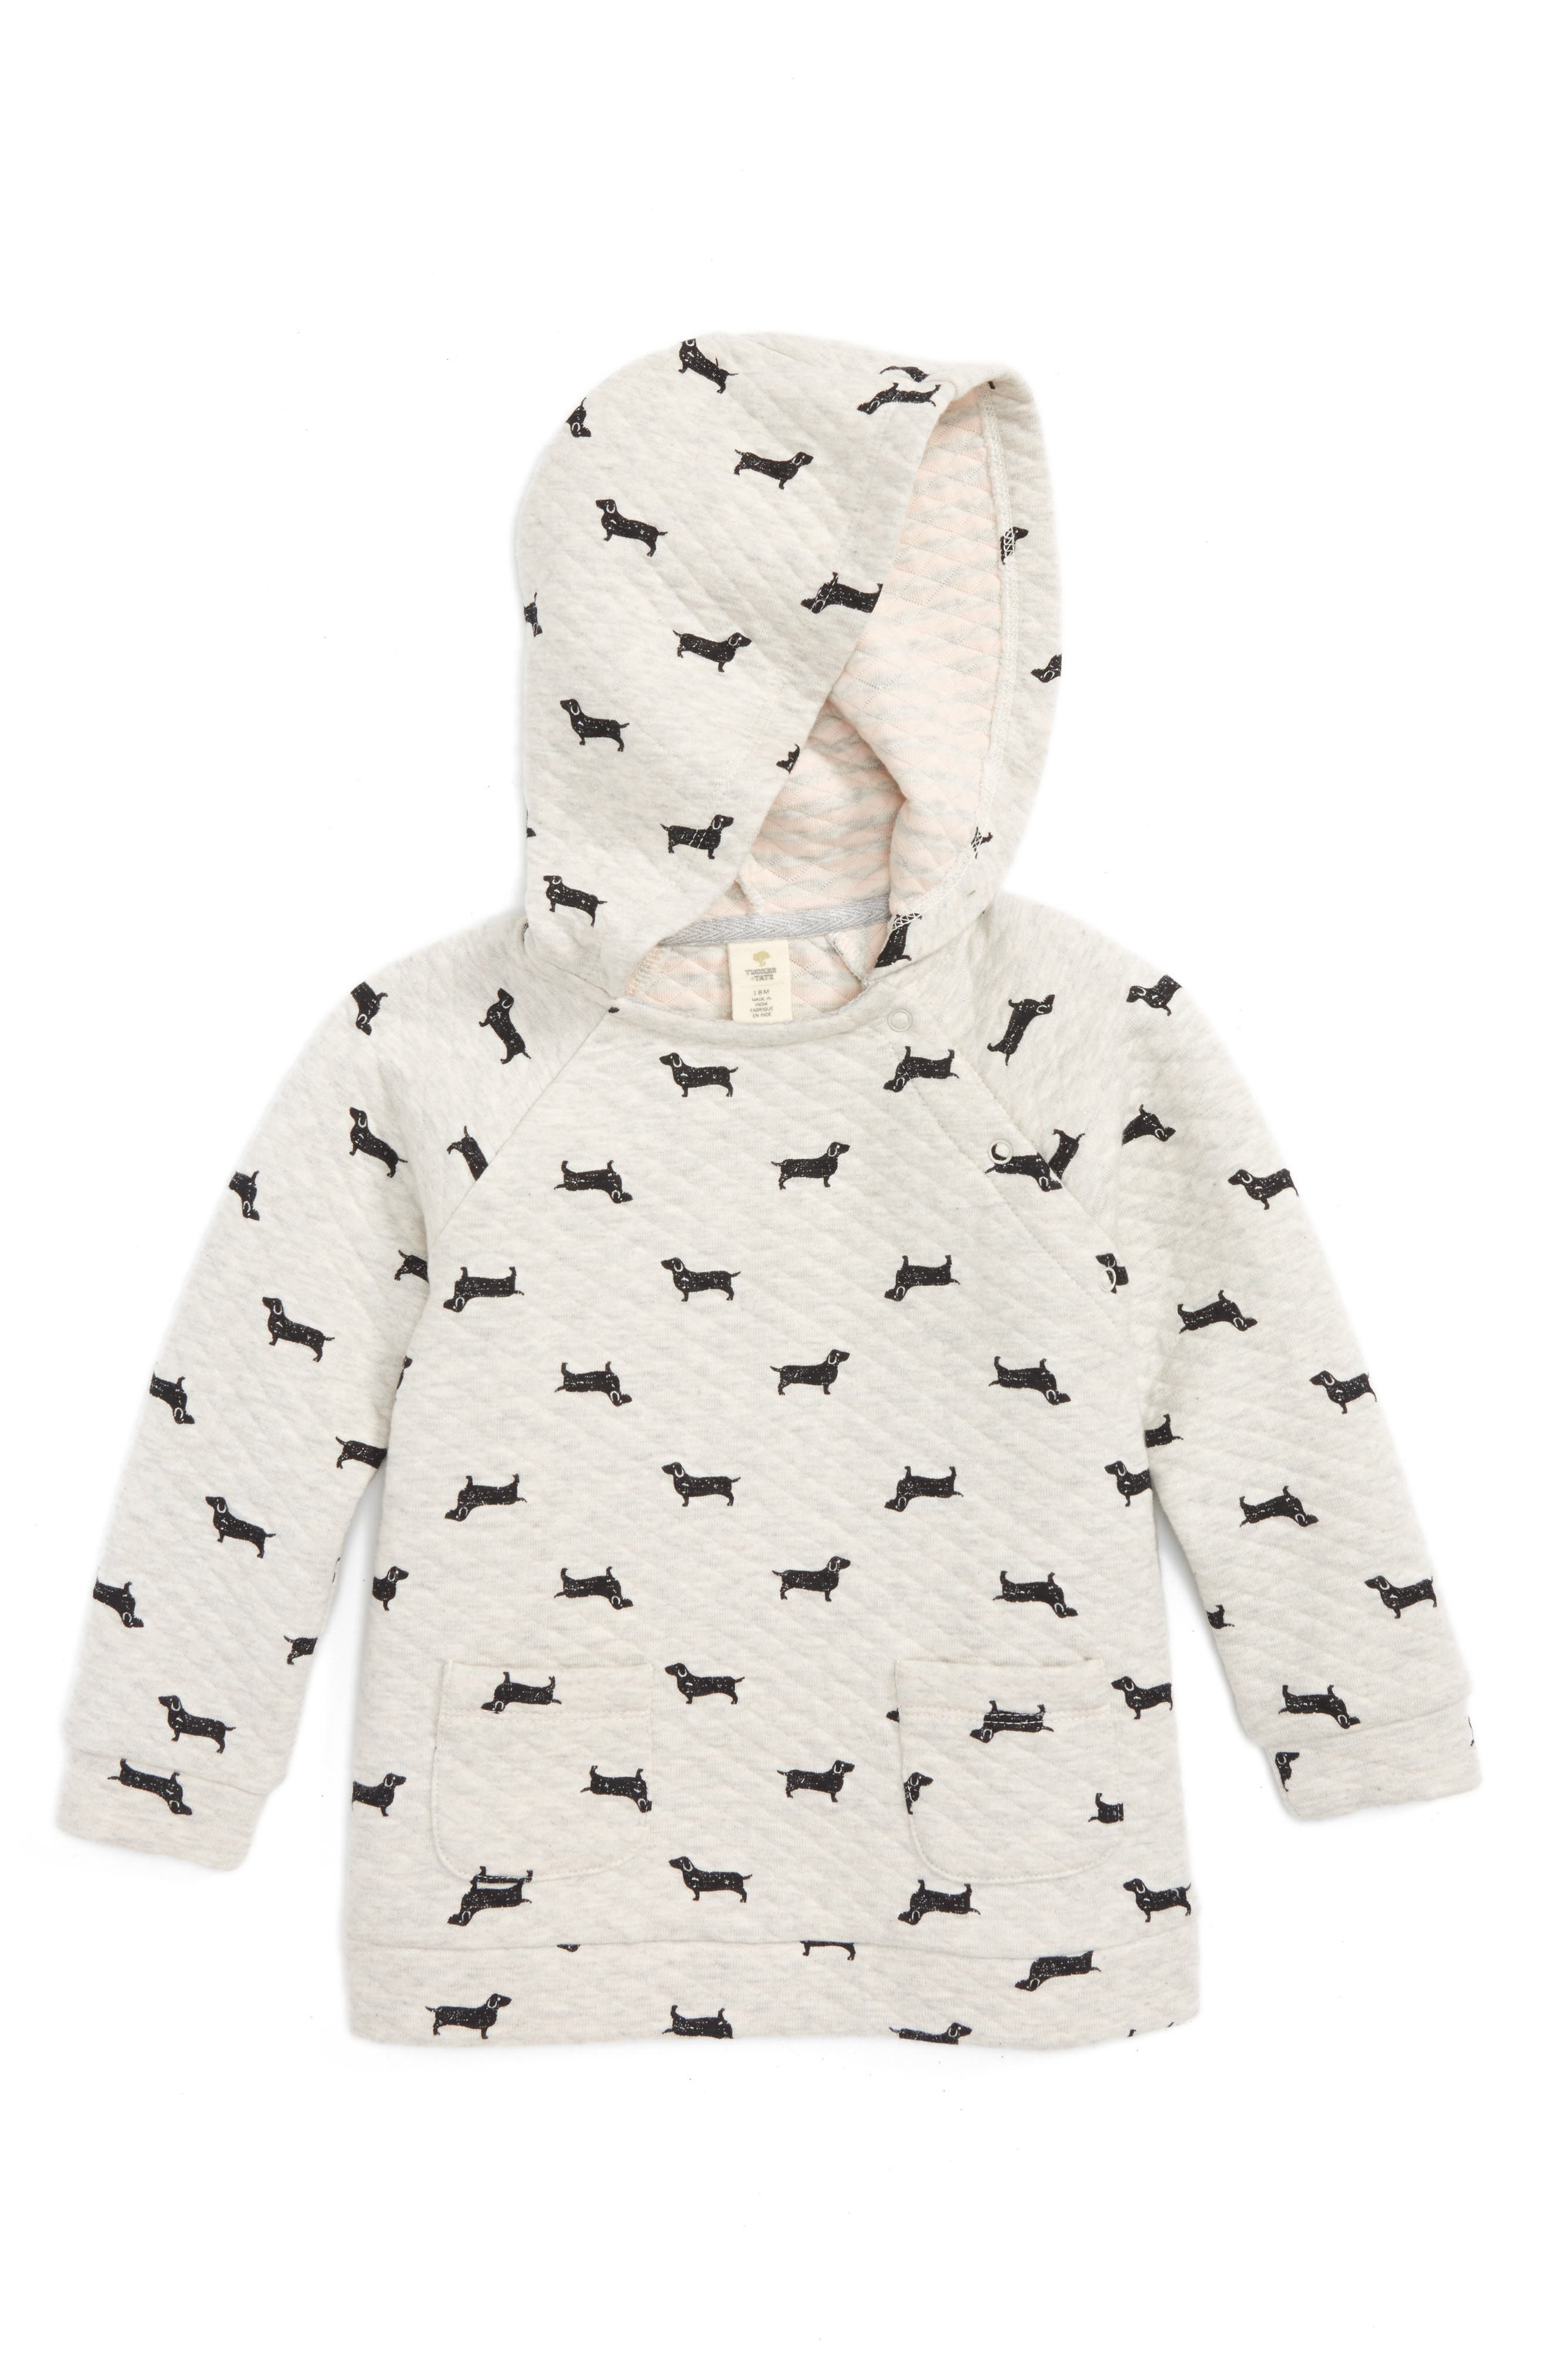 Alternate Image 1 Selected - Tucker + Tate Dog Graphic Quilted Hoodie (Baby Girls)